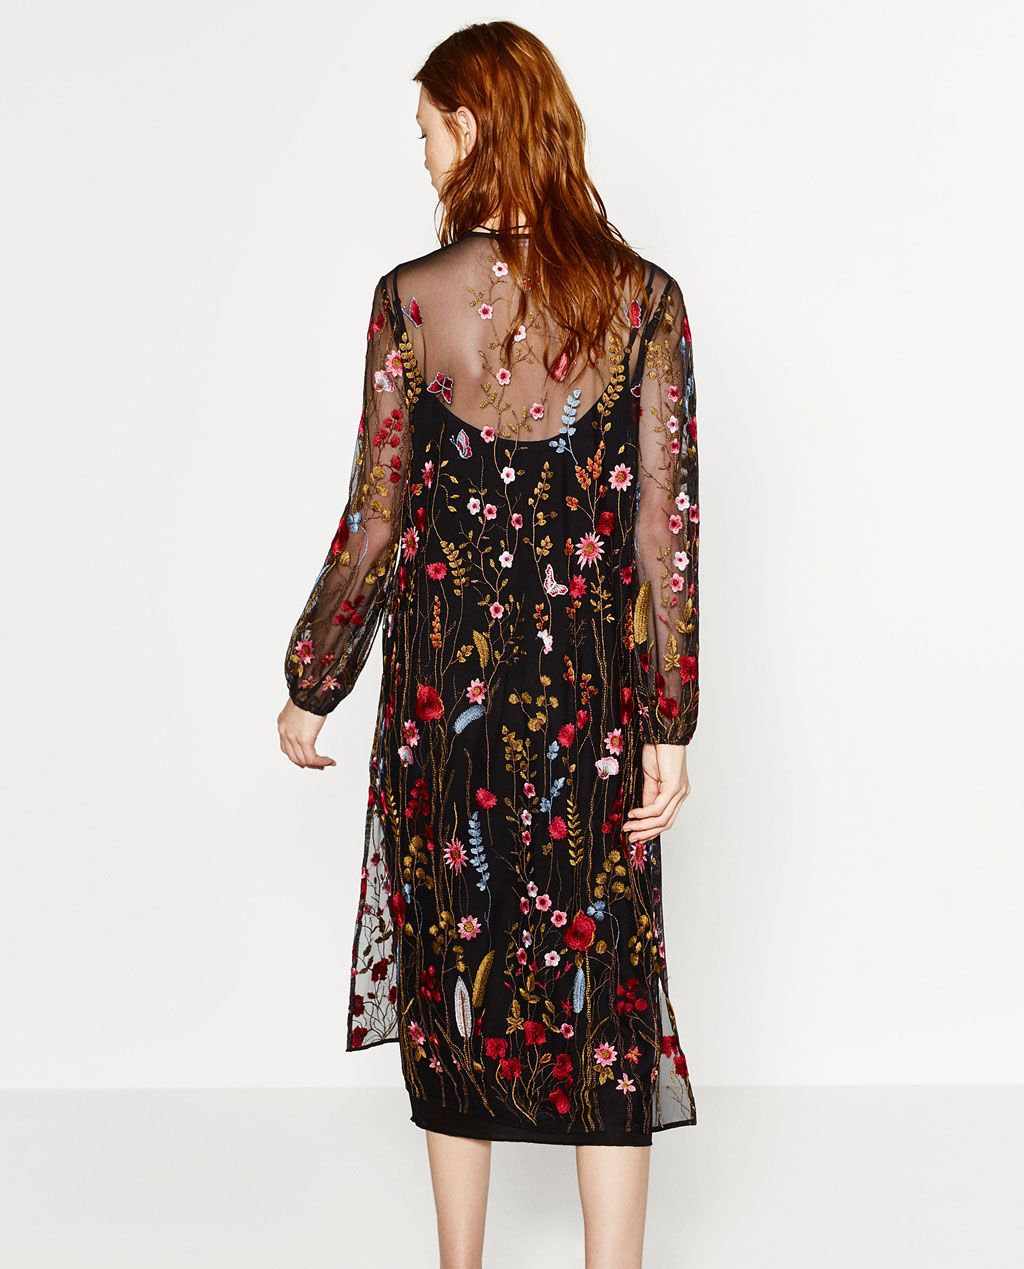 Zara Long Embroidered Floral Midi Dress Zara Long Embroidered Dress. Size  XS. OUTER SHELL